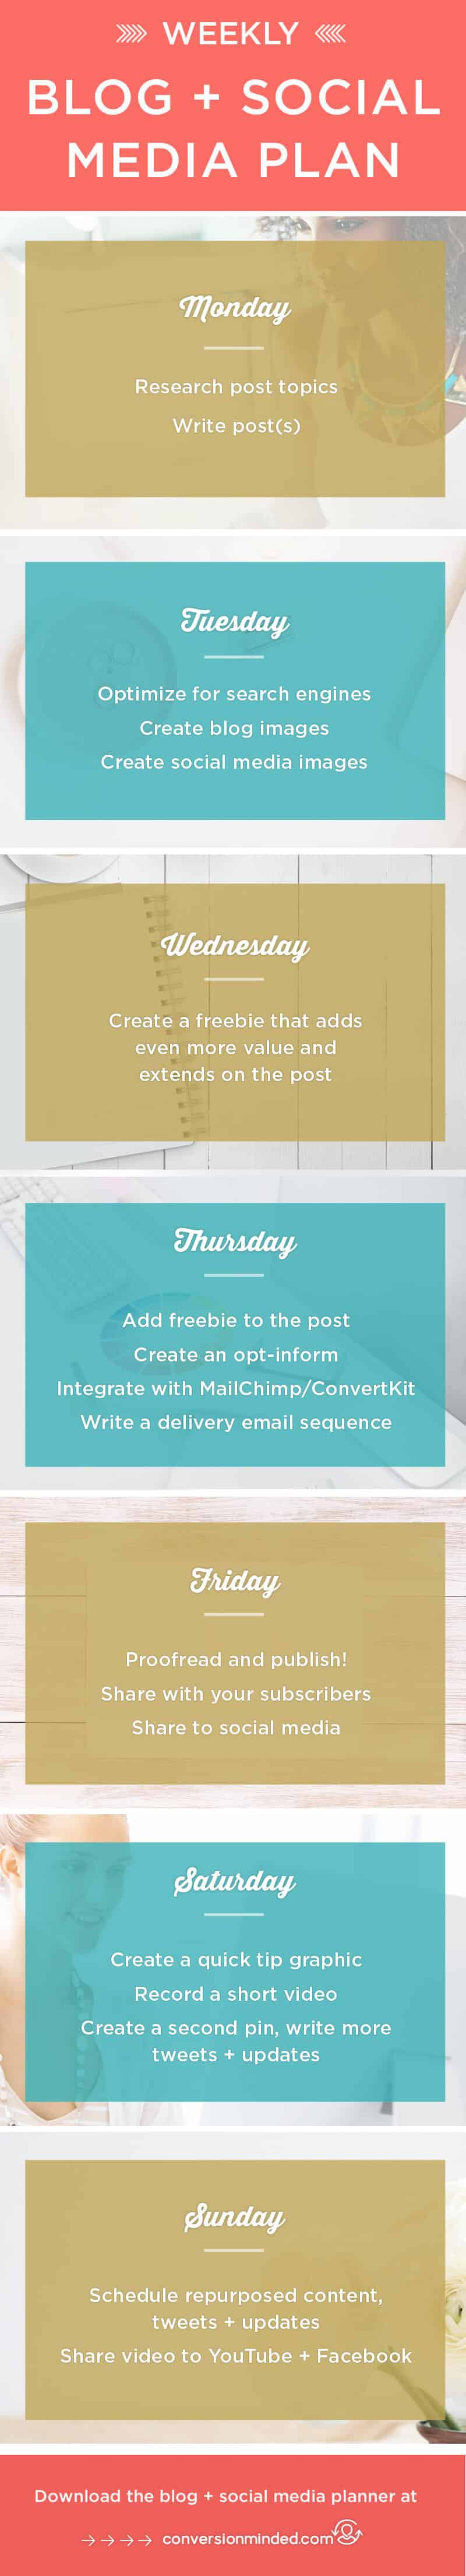 7-Day Social Media Plan | Want to sell your products and make money with your blog? First, you need to get visible! This post includes a weekly social media marketing plan to drive massive traffic. Click through to see all the steps and download the social media planner!